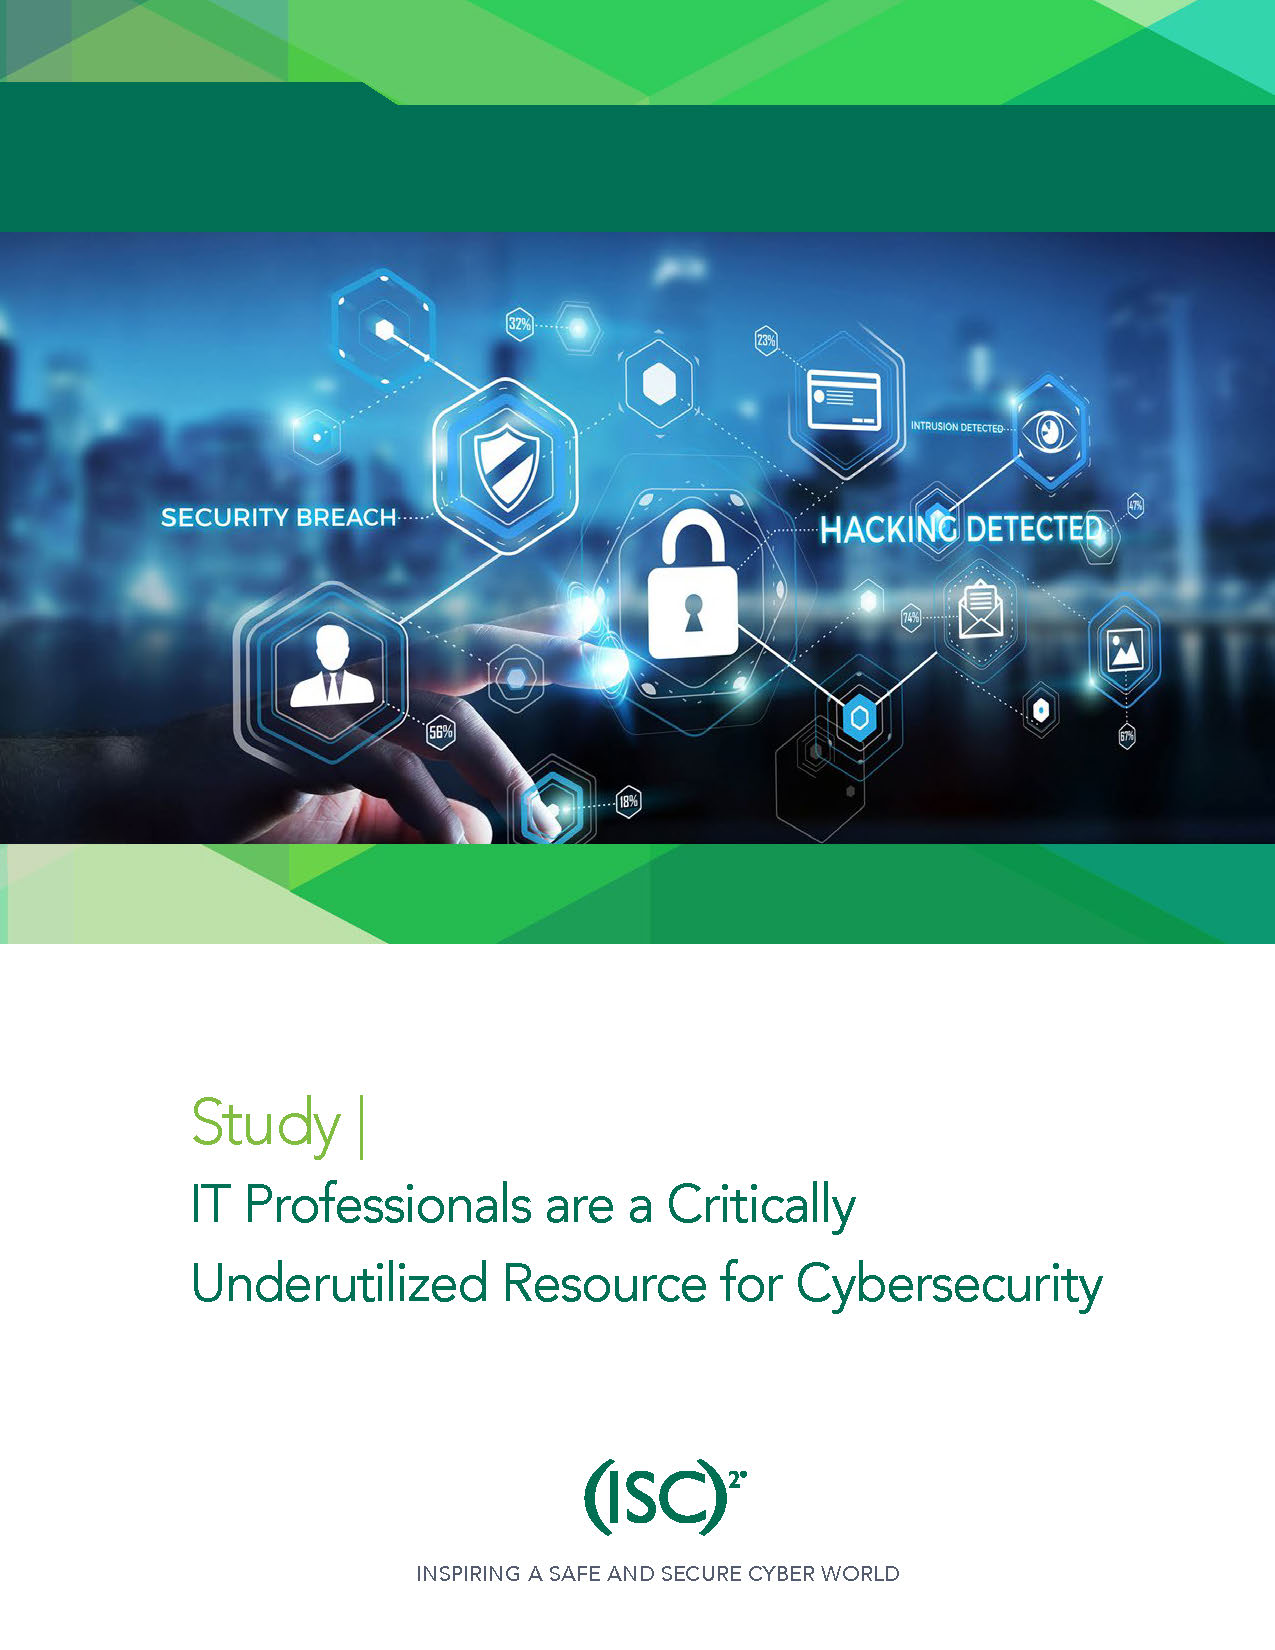 Cybersecurity: IT Professionals Underutilized